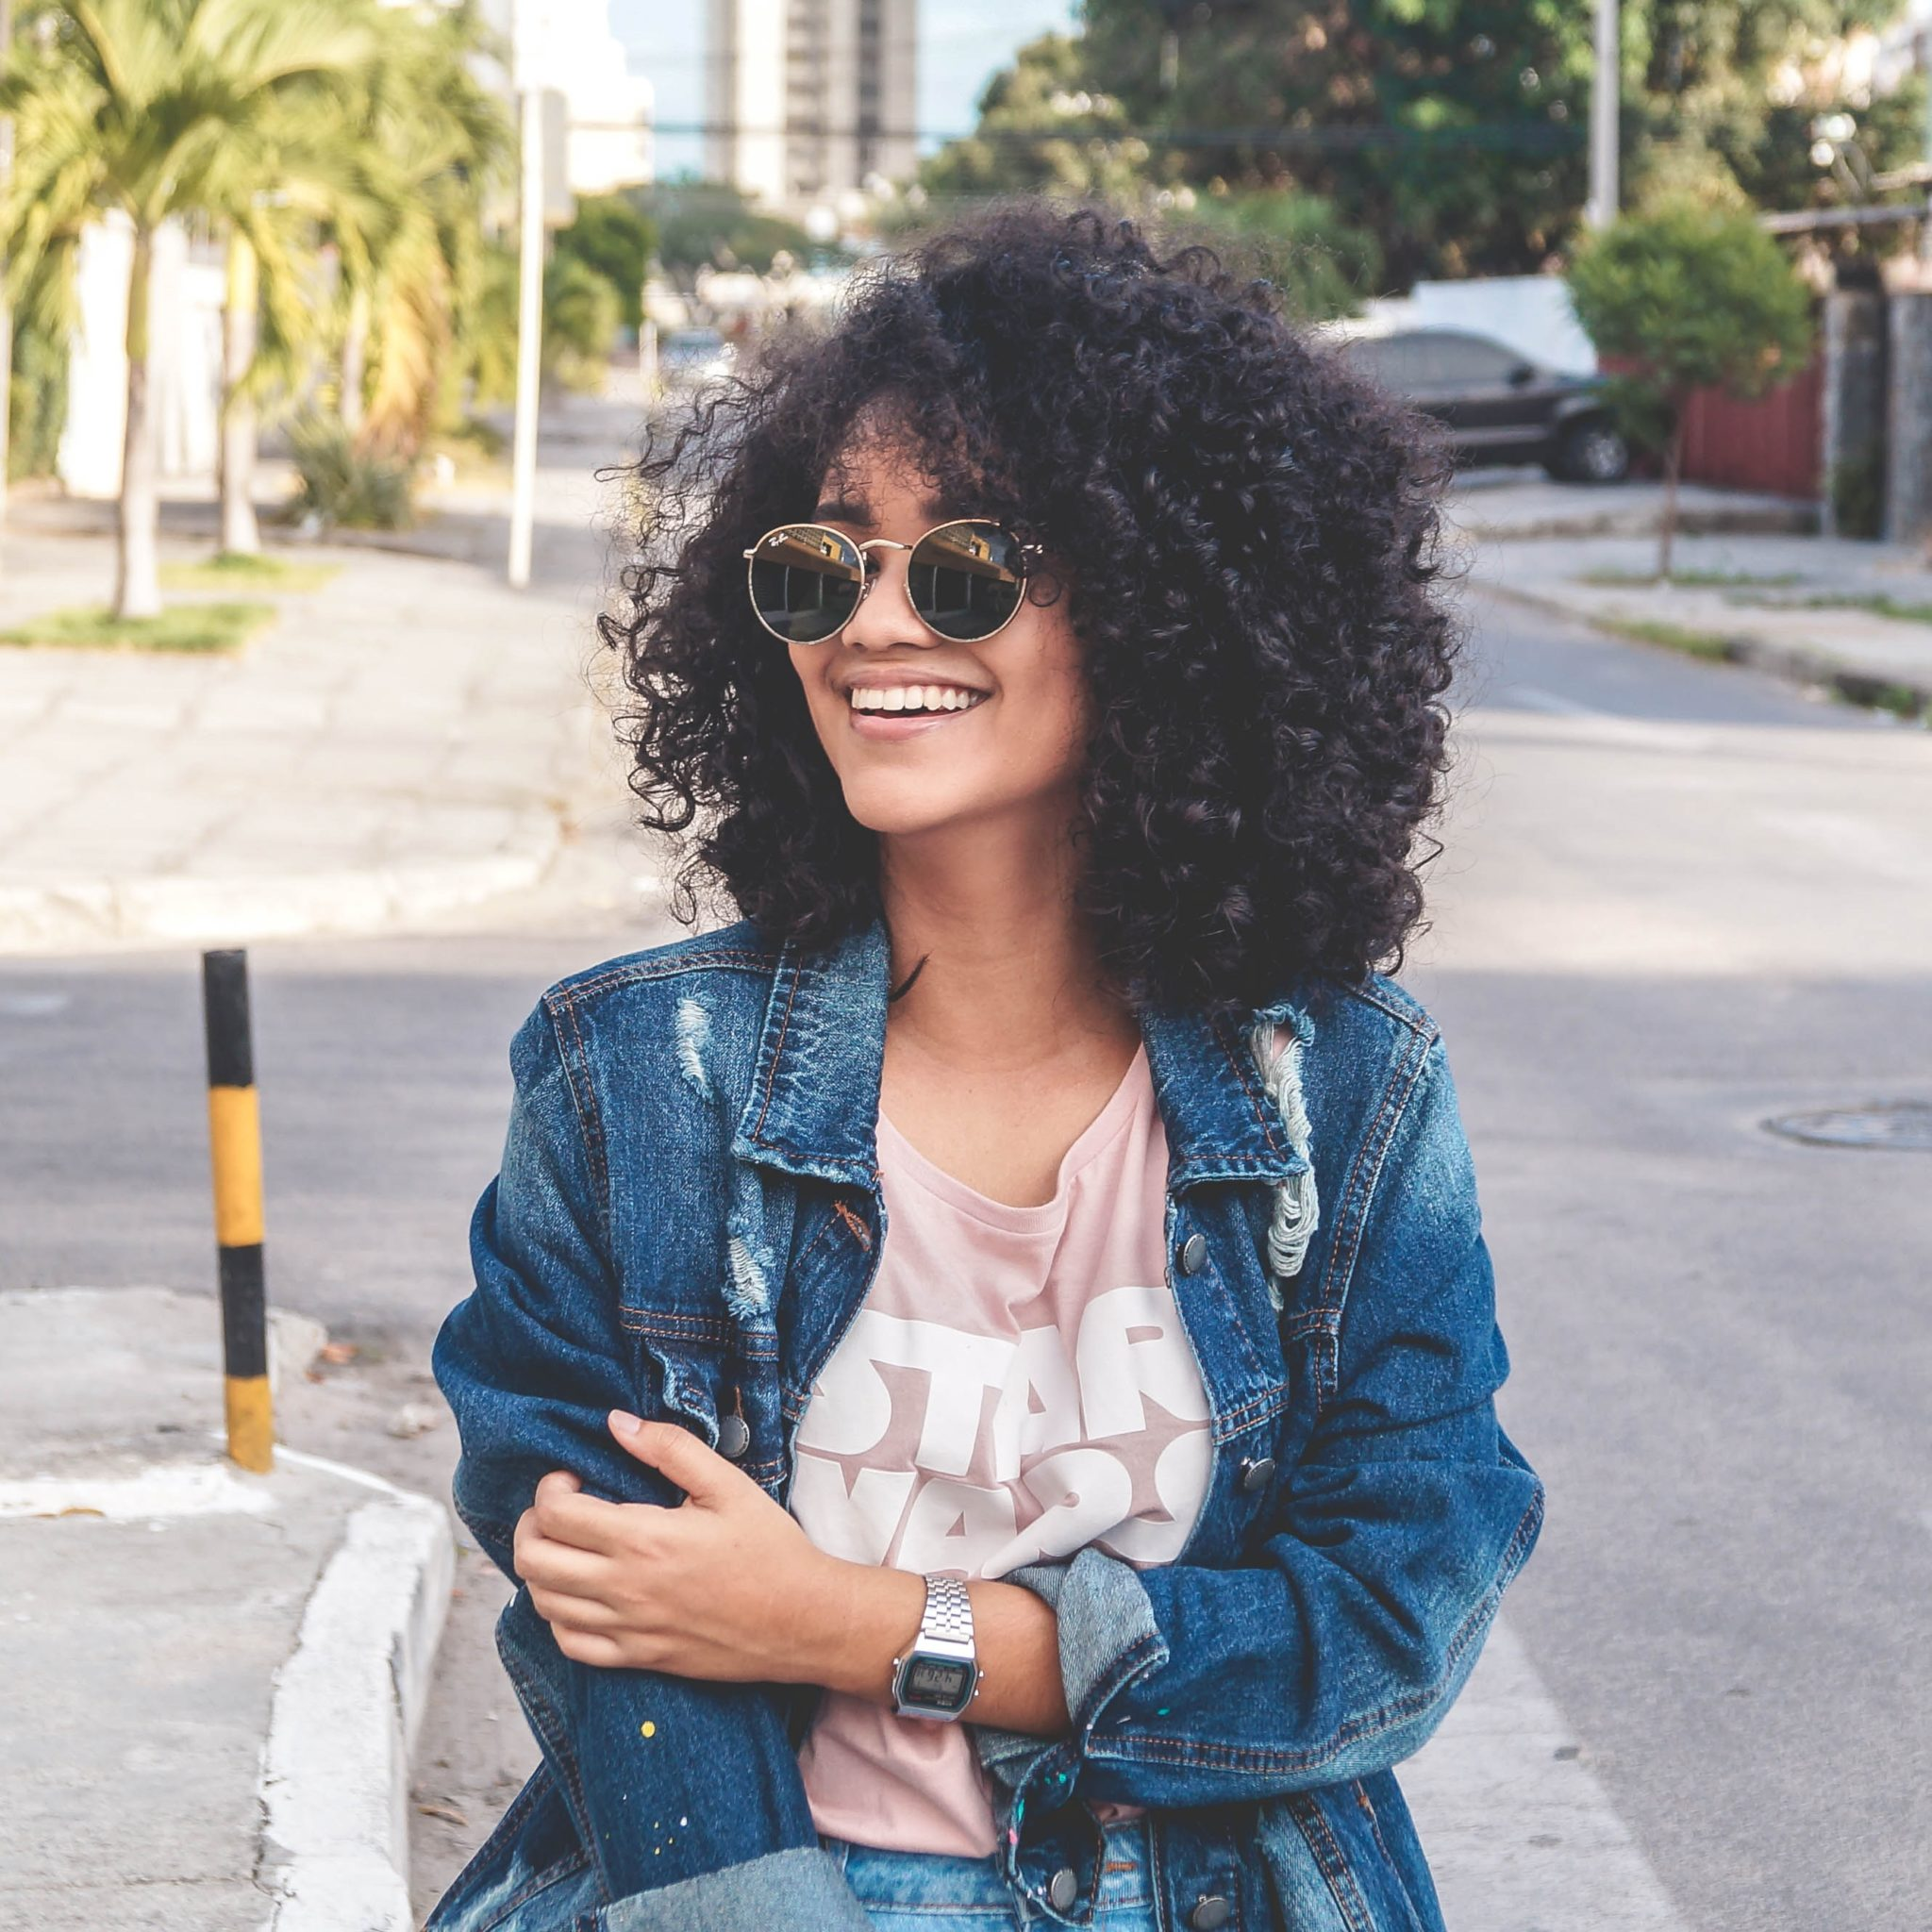 girl with curly hair wearing sunglasses standing in road with a denim jacket on, arms folded in front of her with a star wars tshirt showing under the jacket